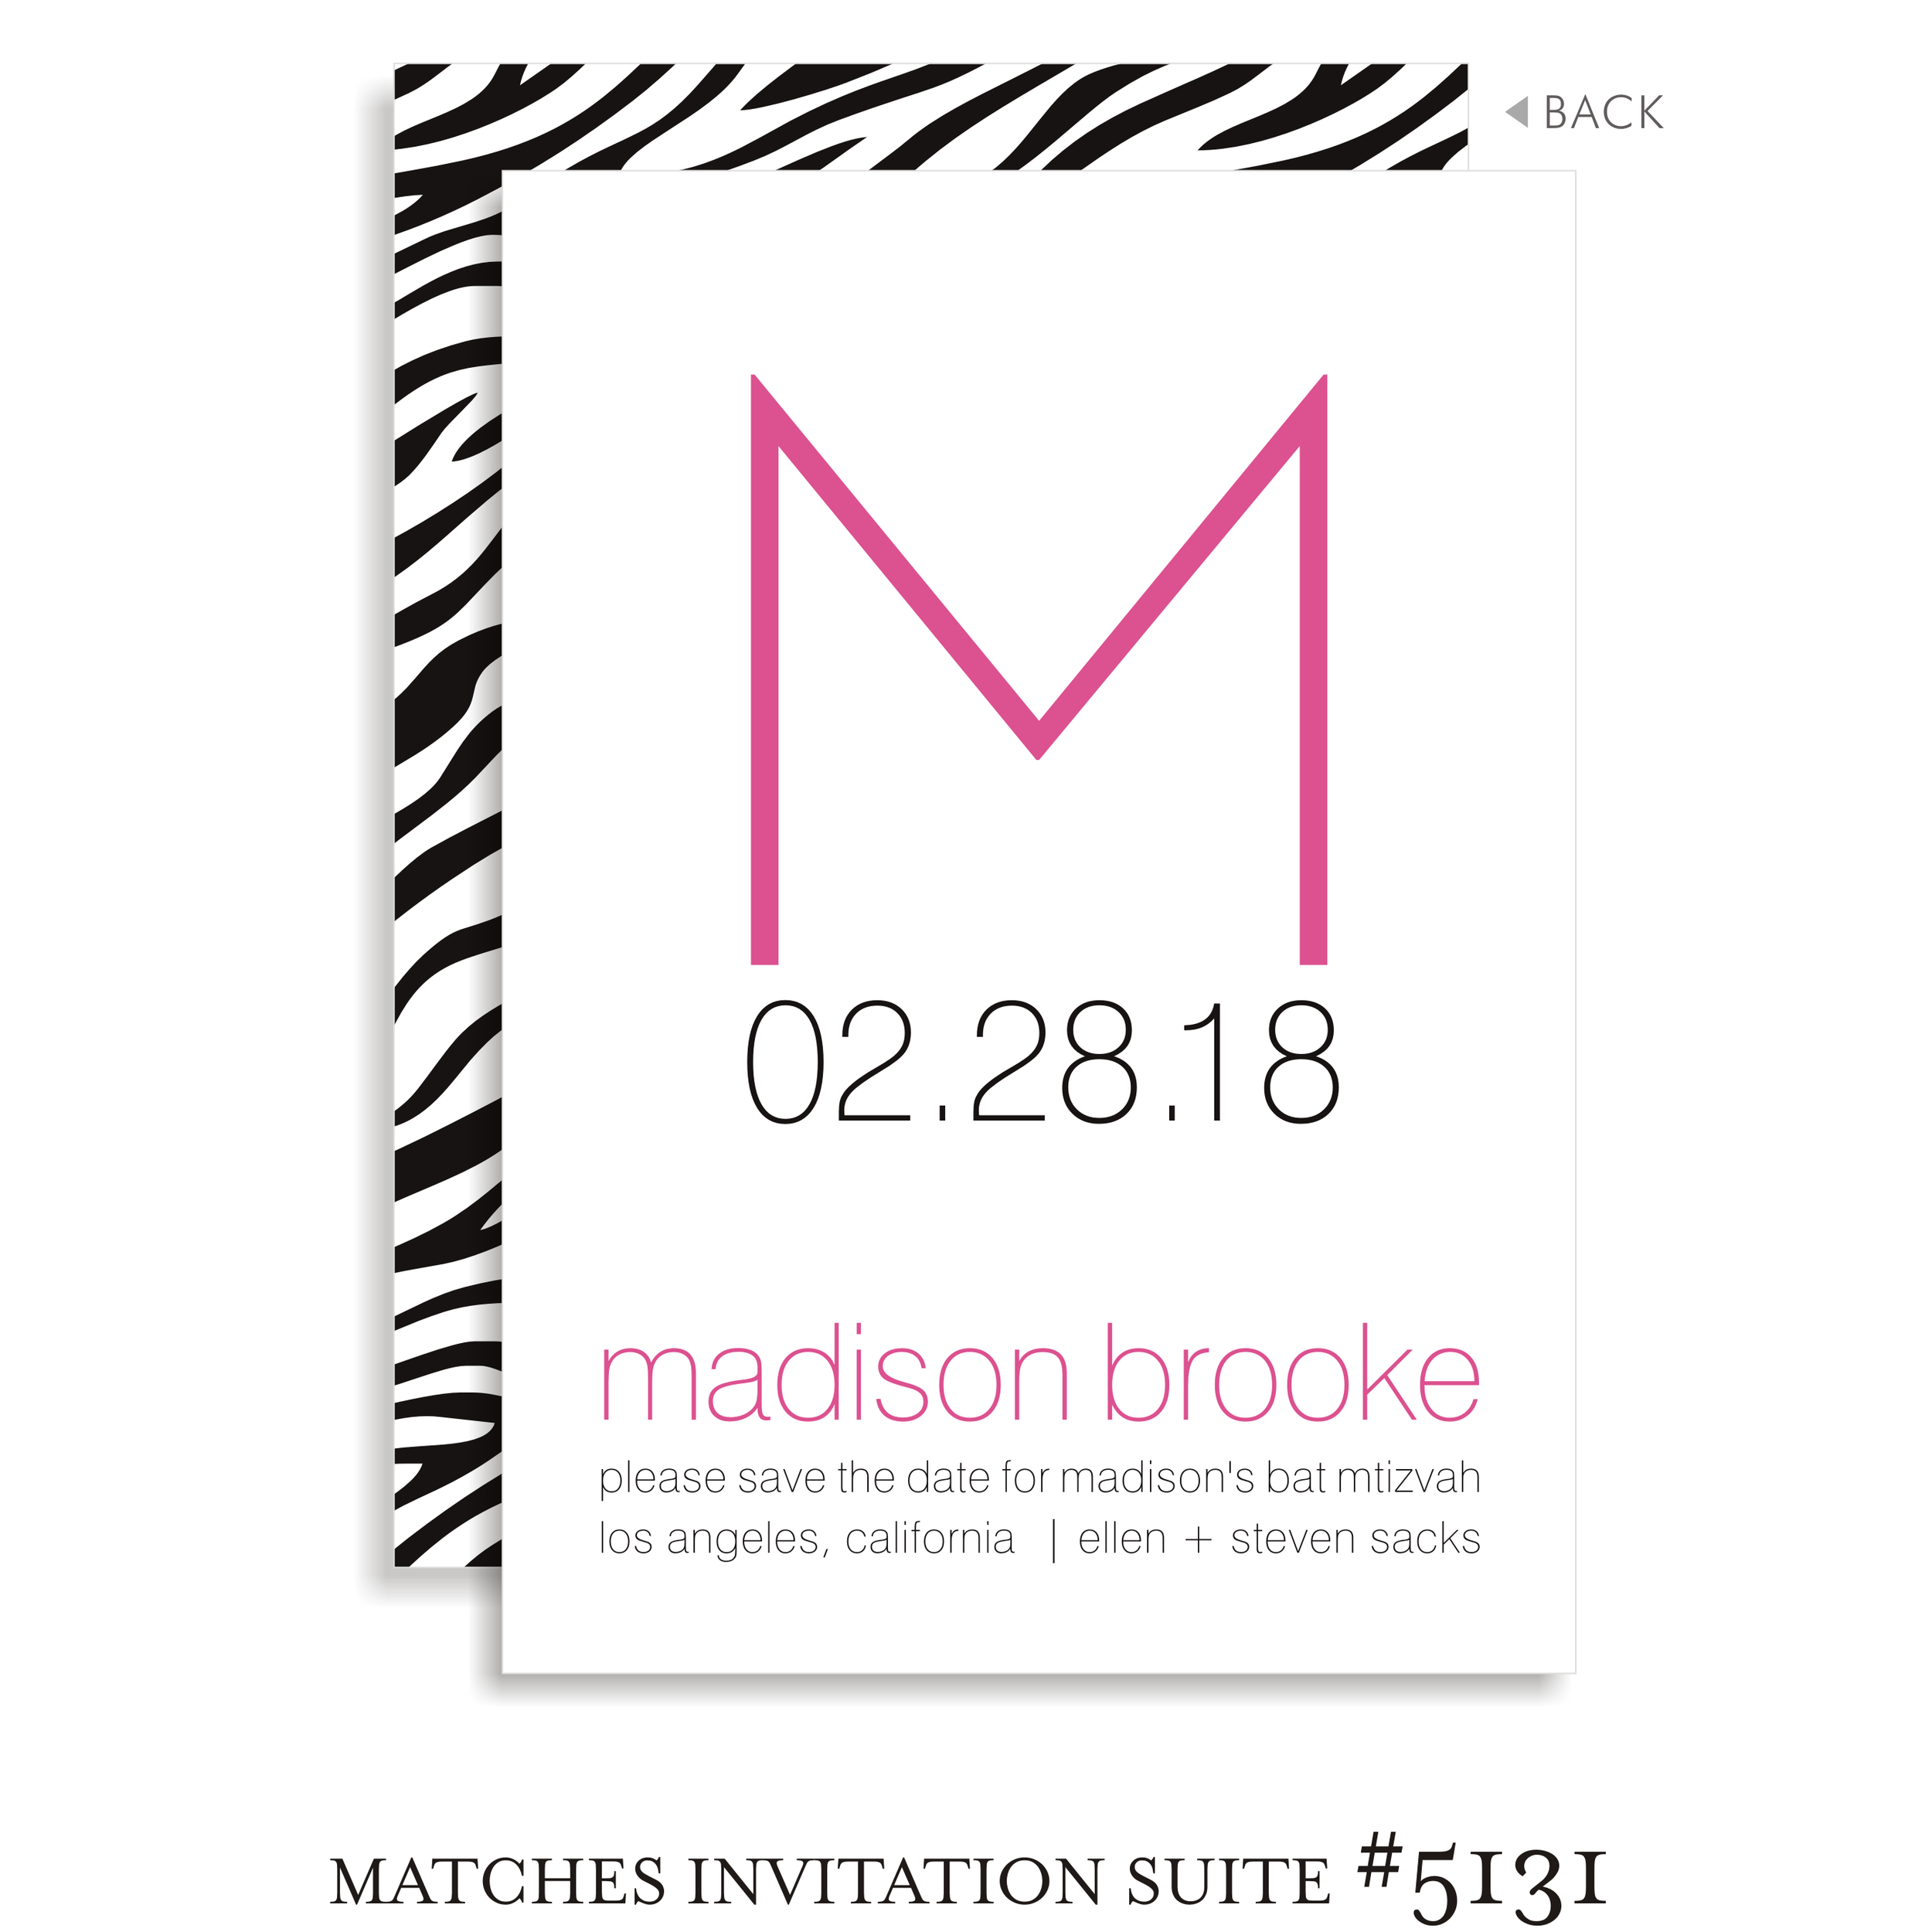 Save the Date Suite 5131 - Madison Brooke